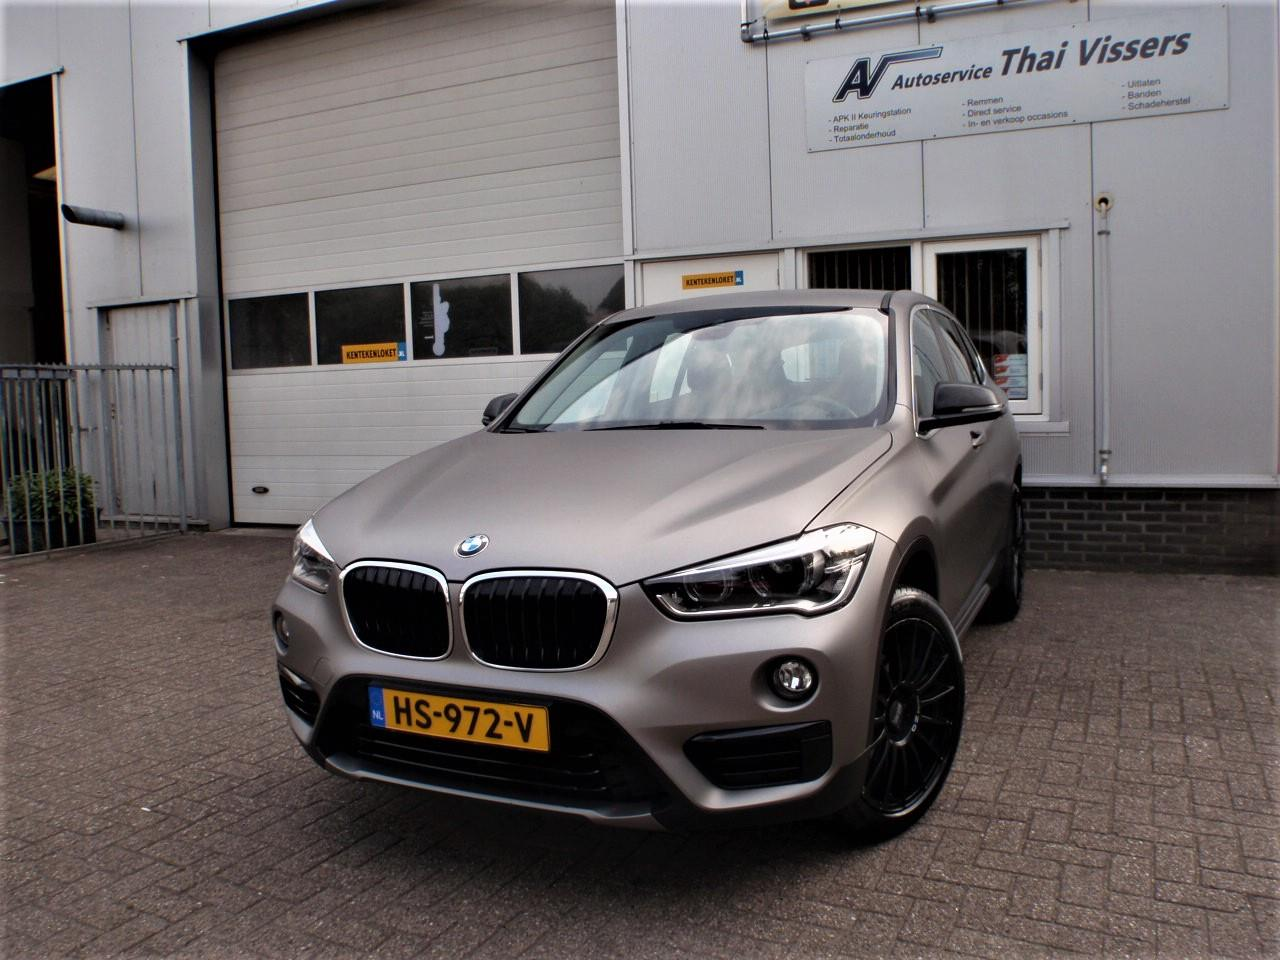 Led Verlichting Bmw X1 Bmw X1 1 8d Sdrive Corporate Lease Sport M Stuur Head Up